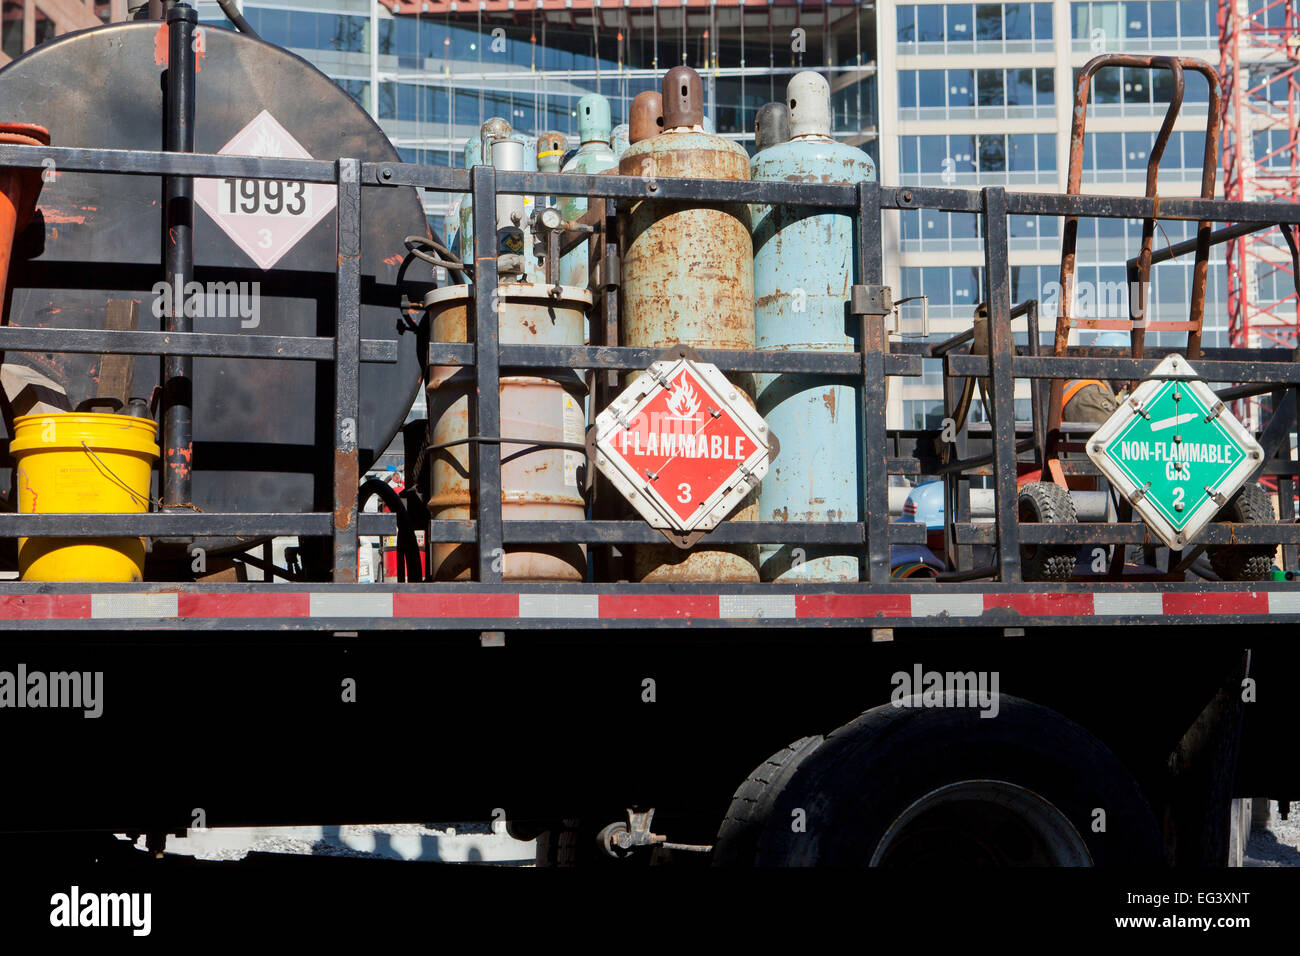 Flammable gas tanks on back of truck - USA - Stock Image